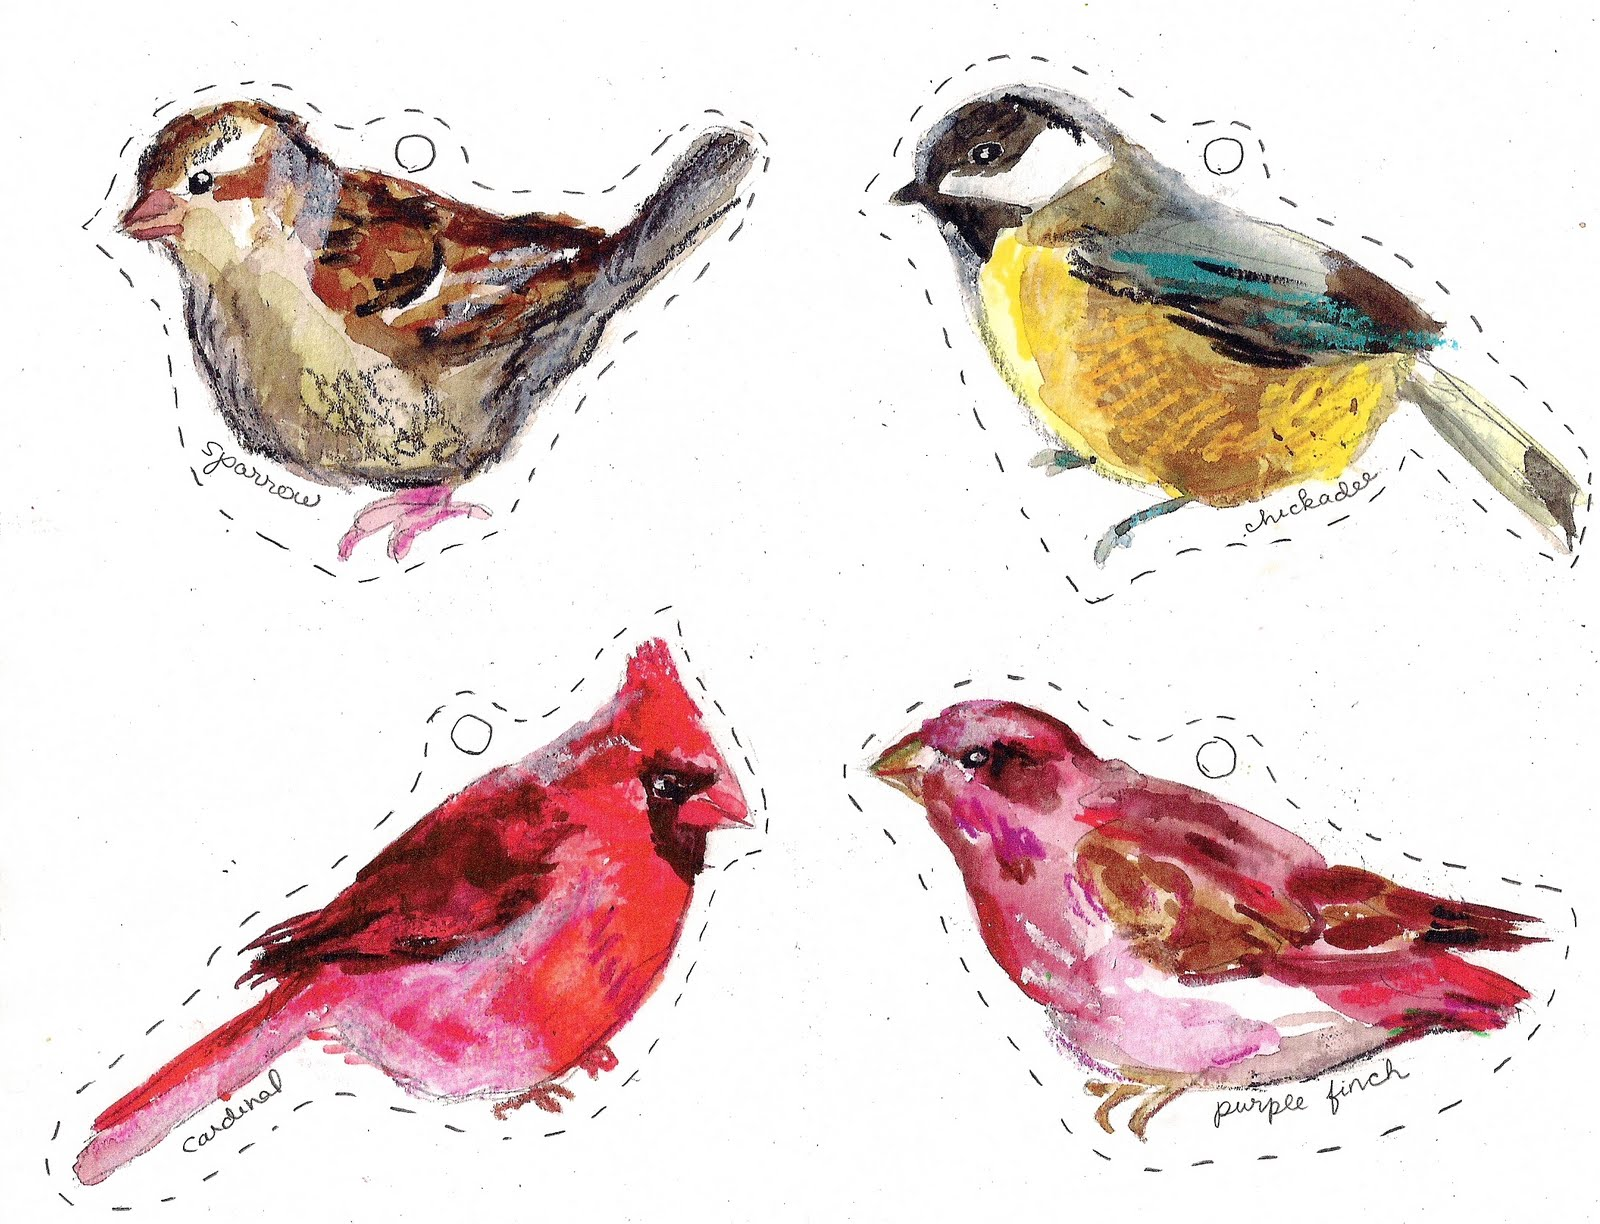 These Are My Holiday Cards For 2010 Various Winter Birds You Can Print Them Out Cut And String With Ribbon Little Paper Ornaments